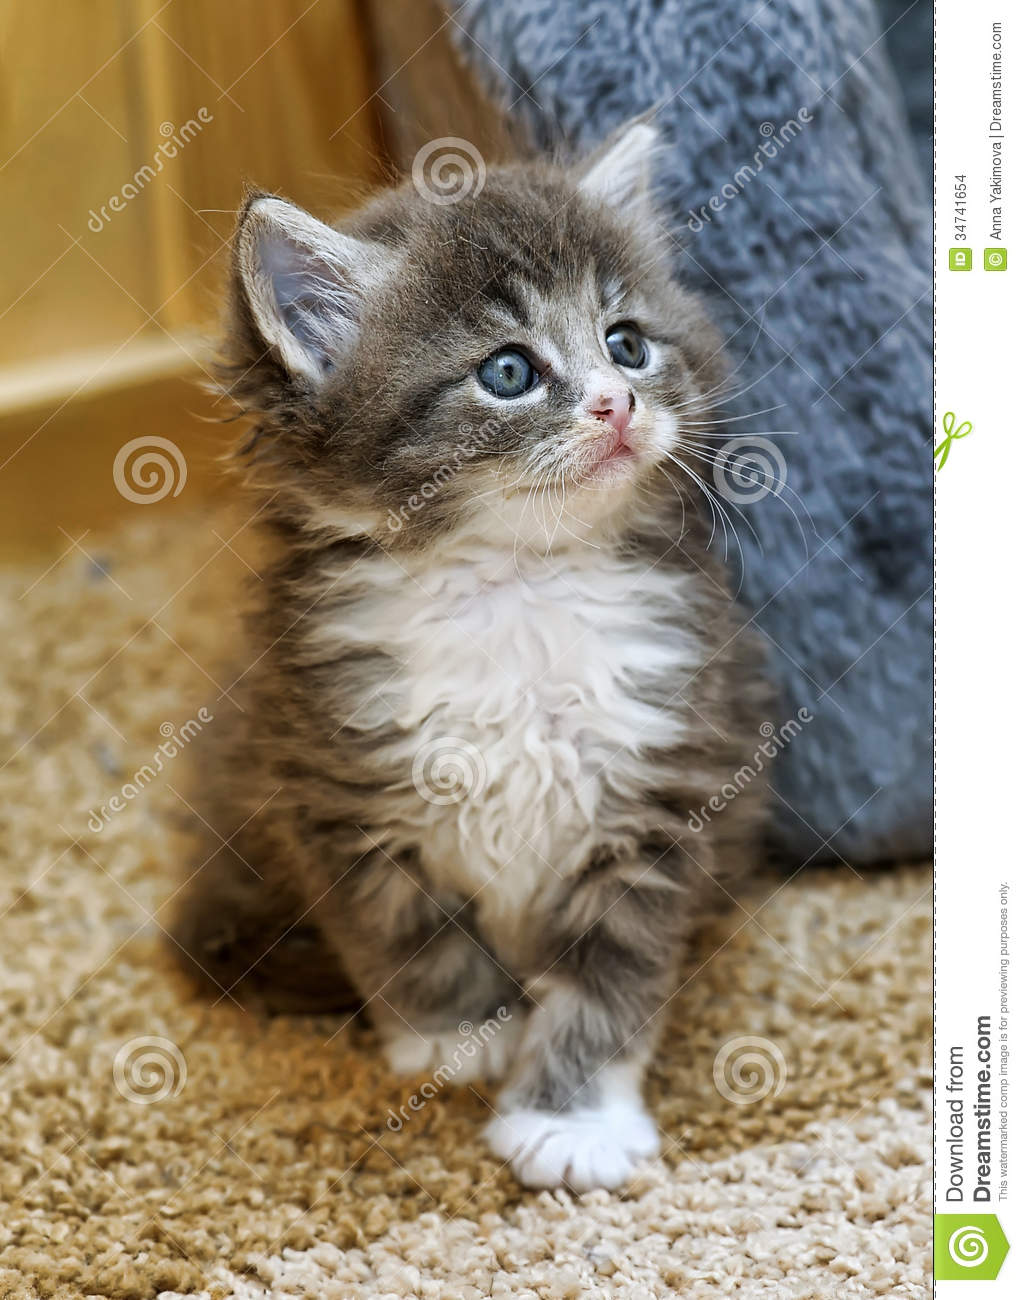 Fluffy Gray And White Kitten Stock Image